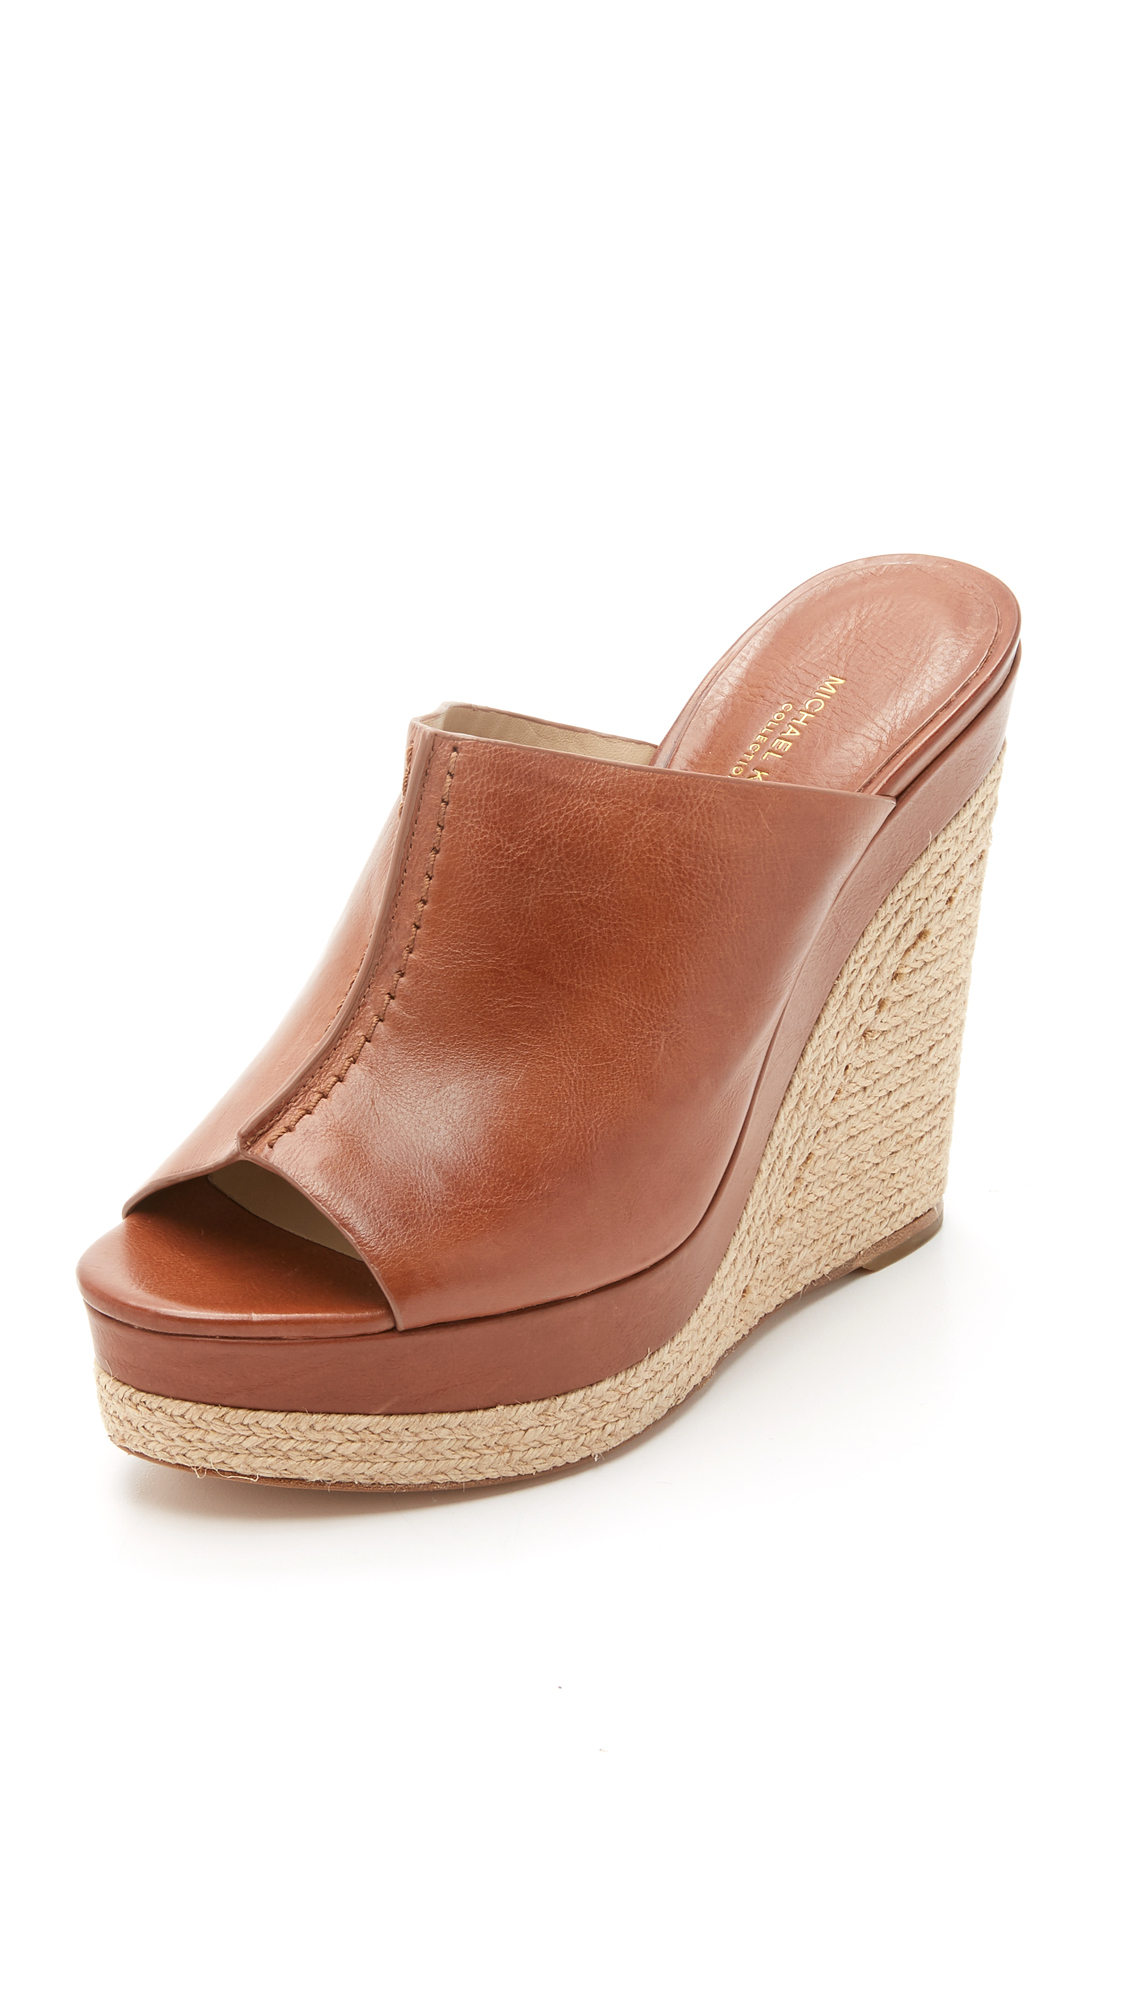 Lyst Michael Kors Charlize Wedge Mules In Brown